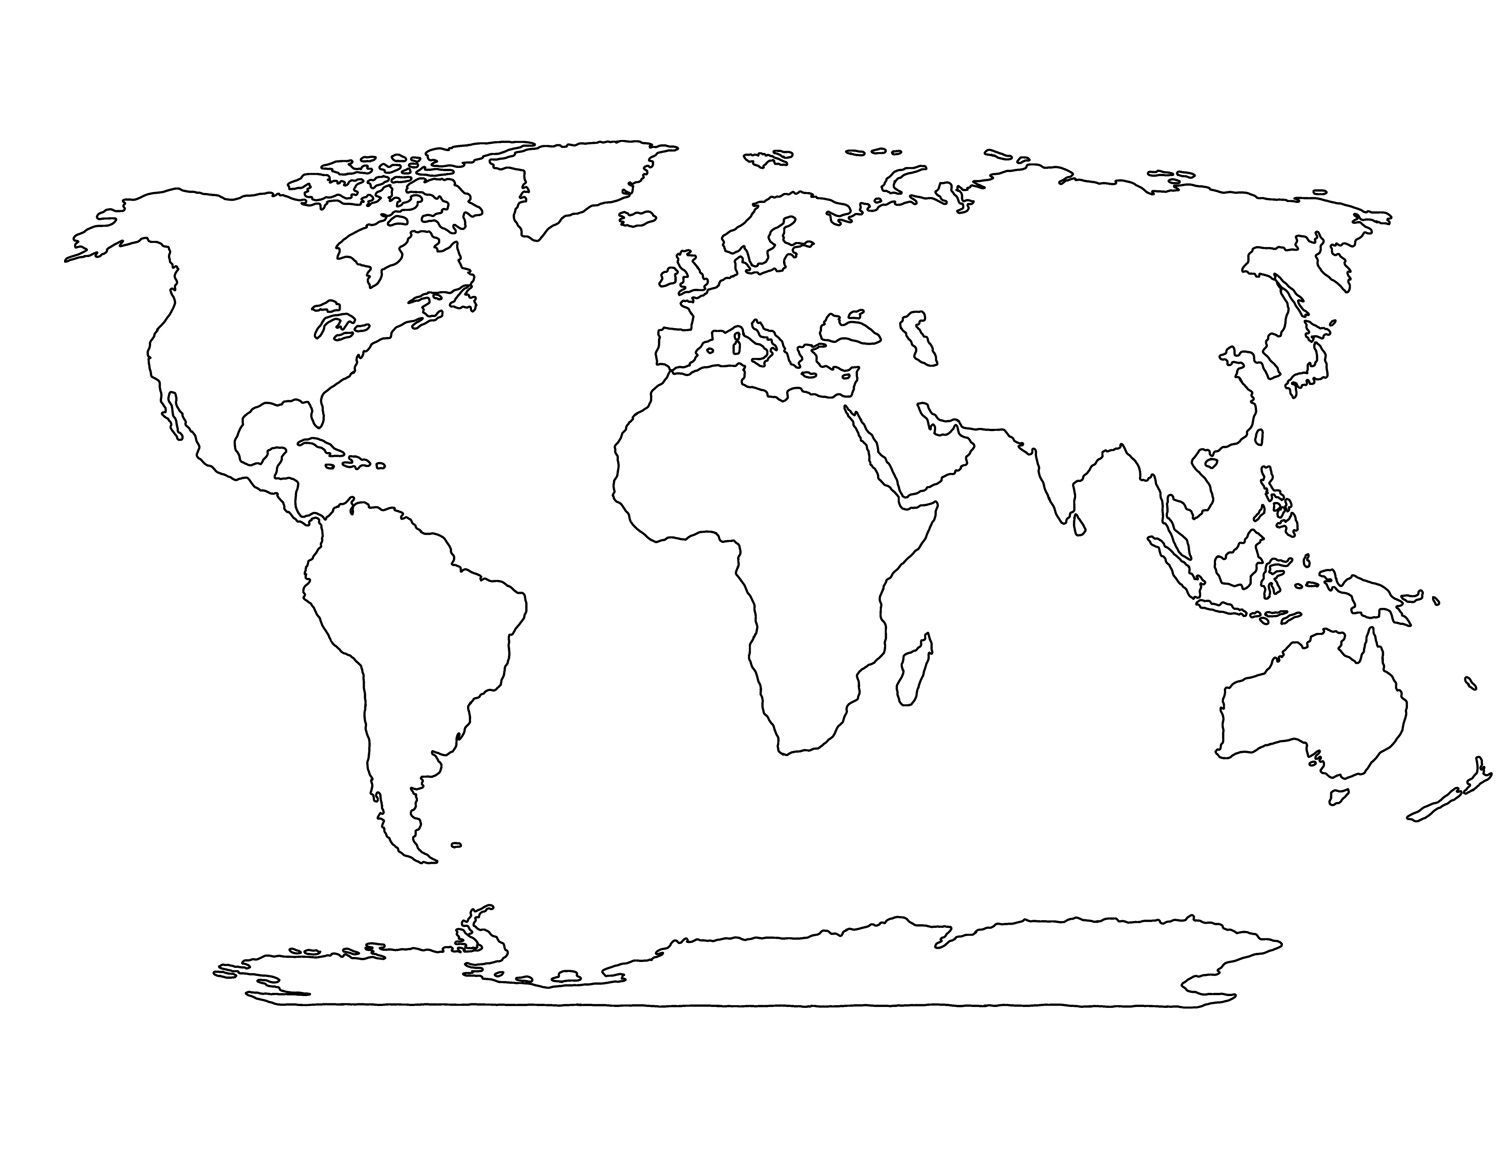 Blank World Map Printable | Social studies | World map printable ...